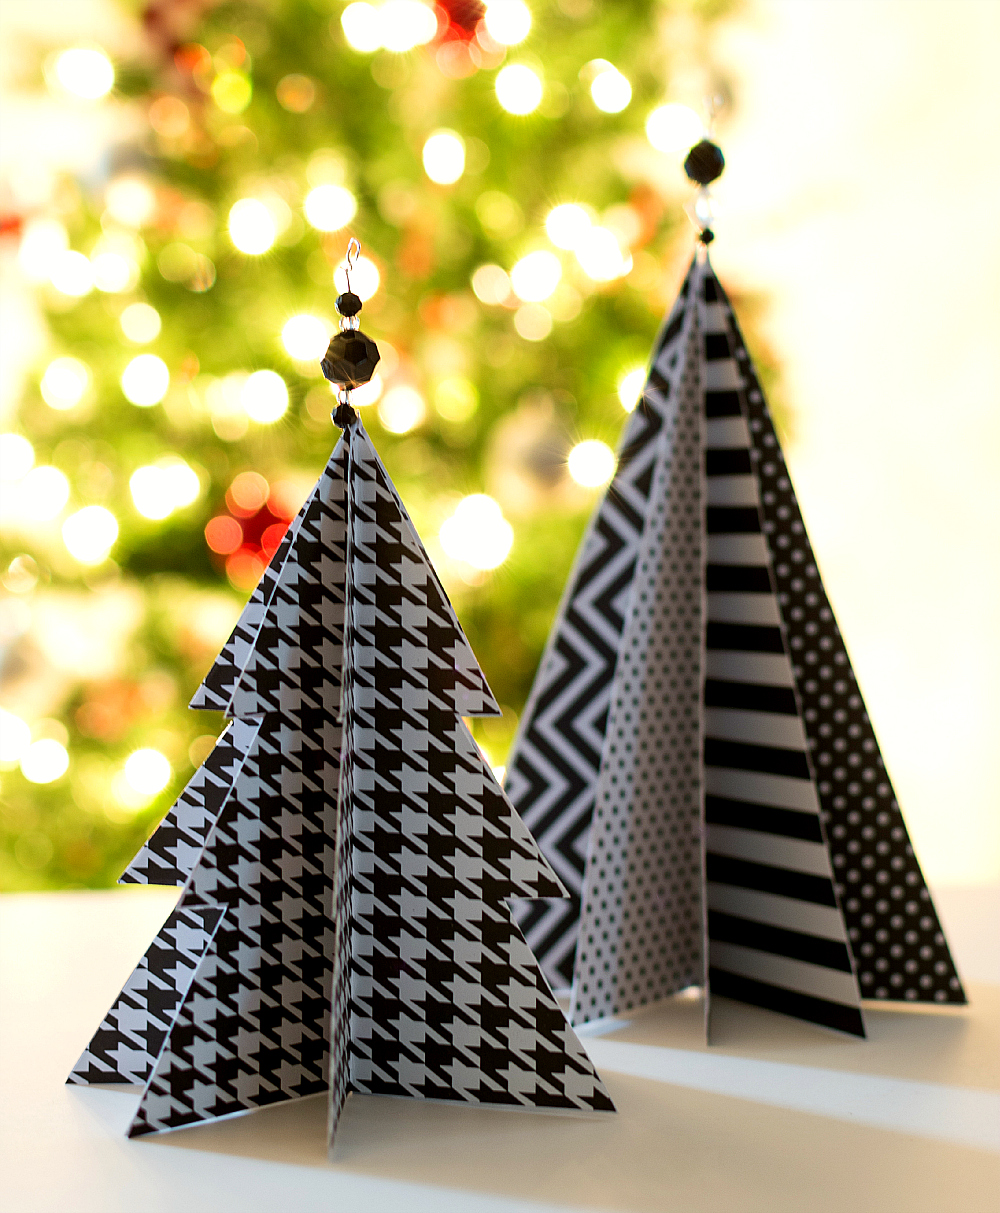 Paper Craft Ideas For Christmas Part - 45: Christmas Craft Ideas: Paper Christmas Trees